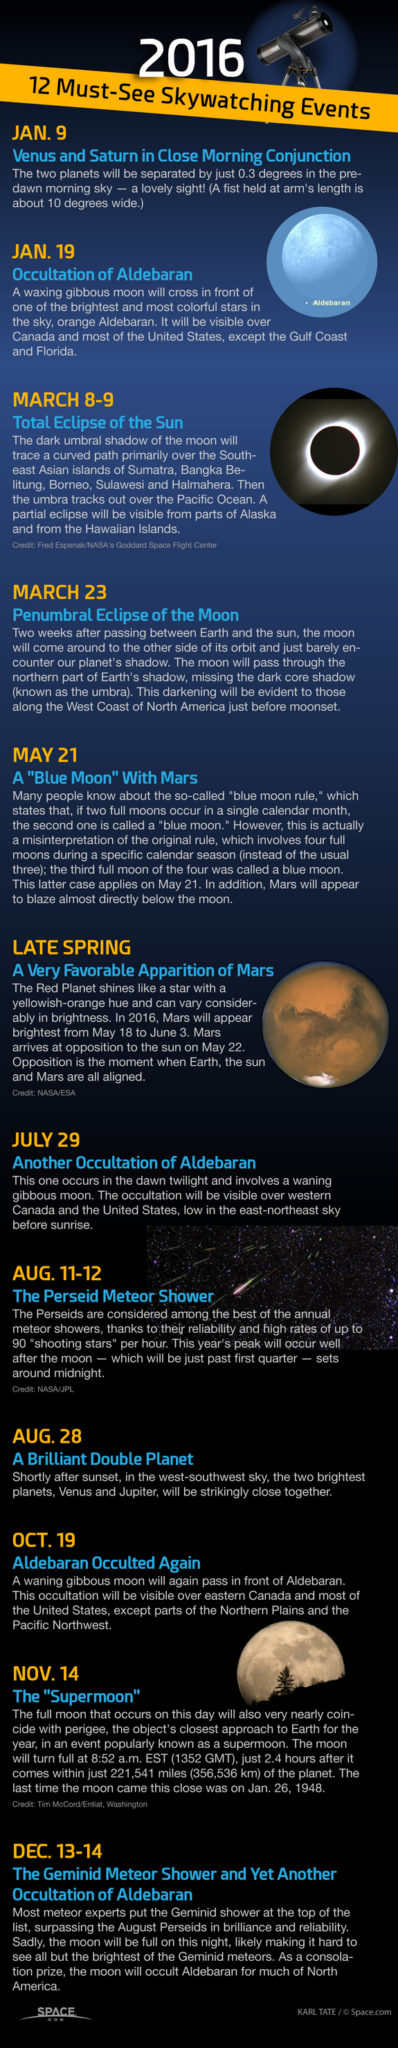 Skywatching events to look for in 2016!